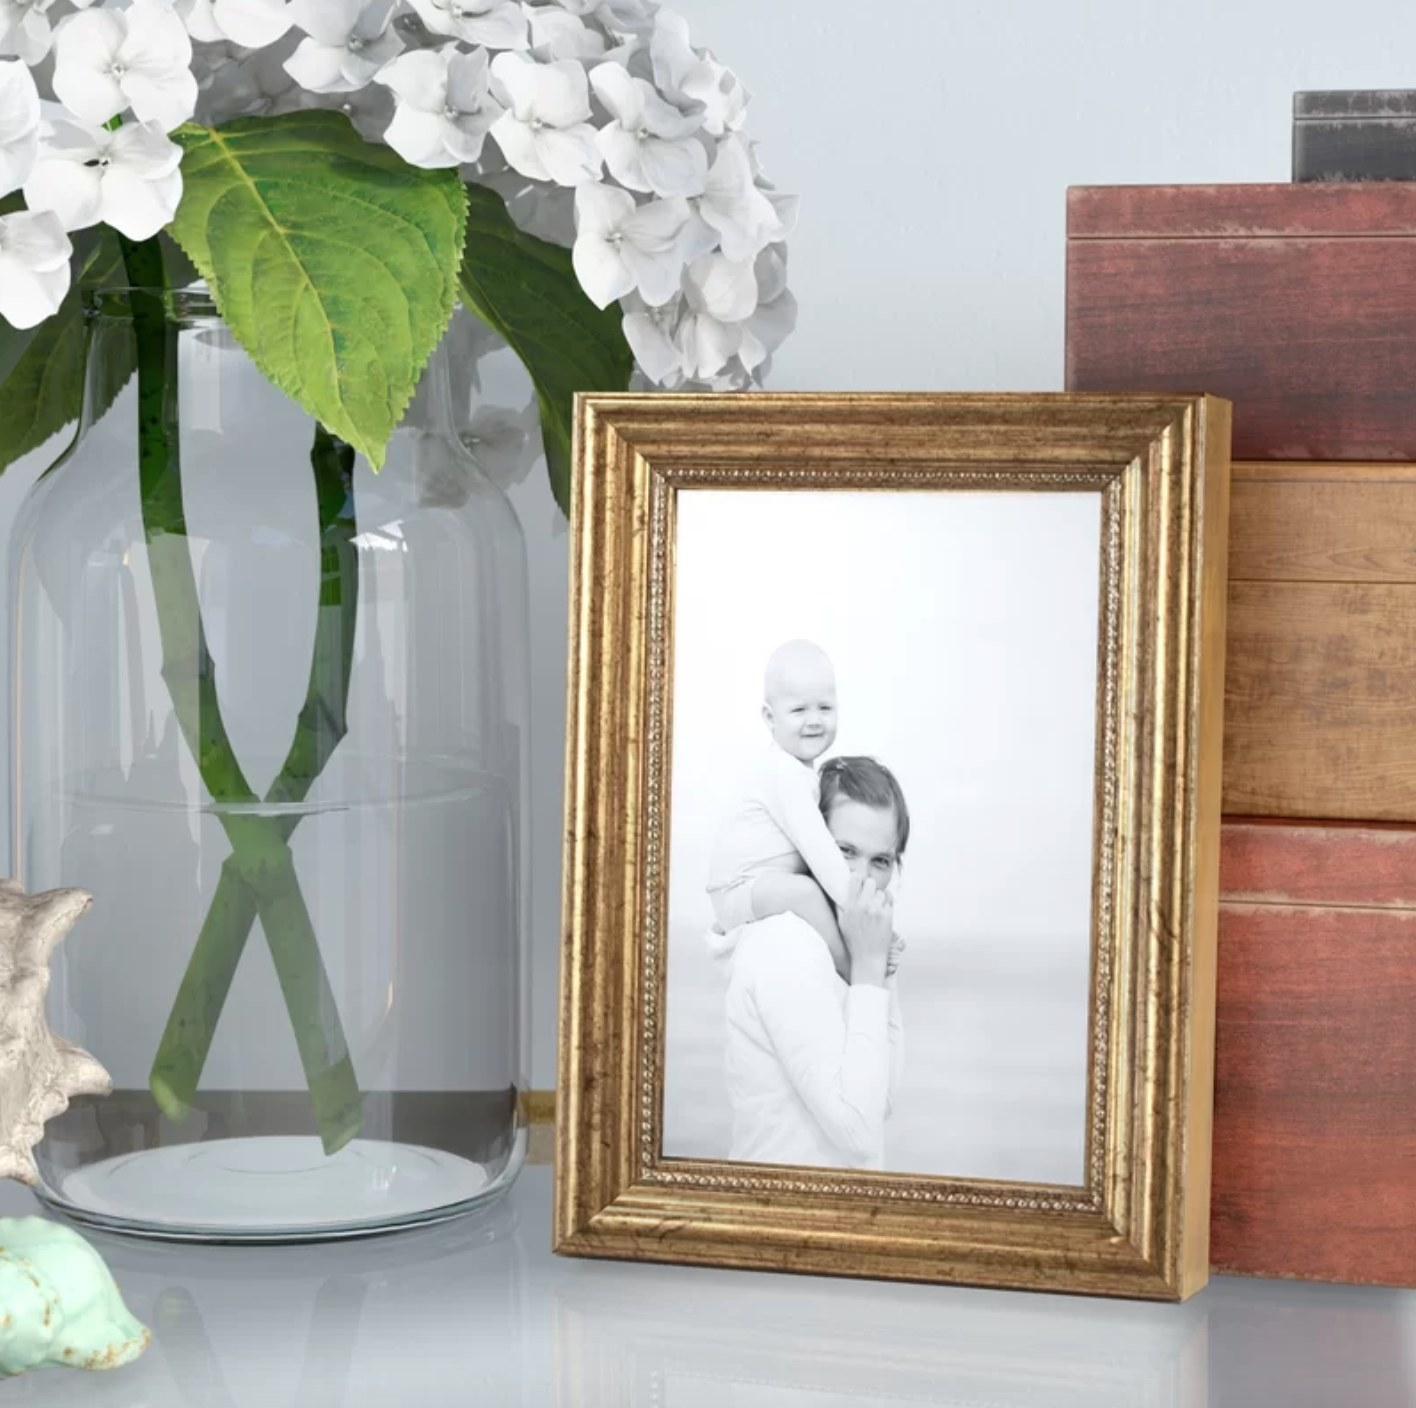 The molding picture frame in gold